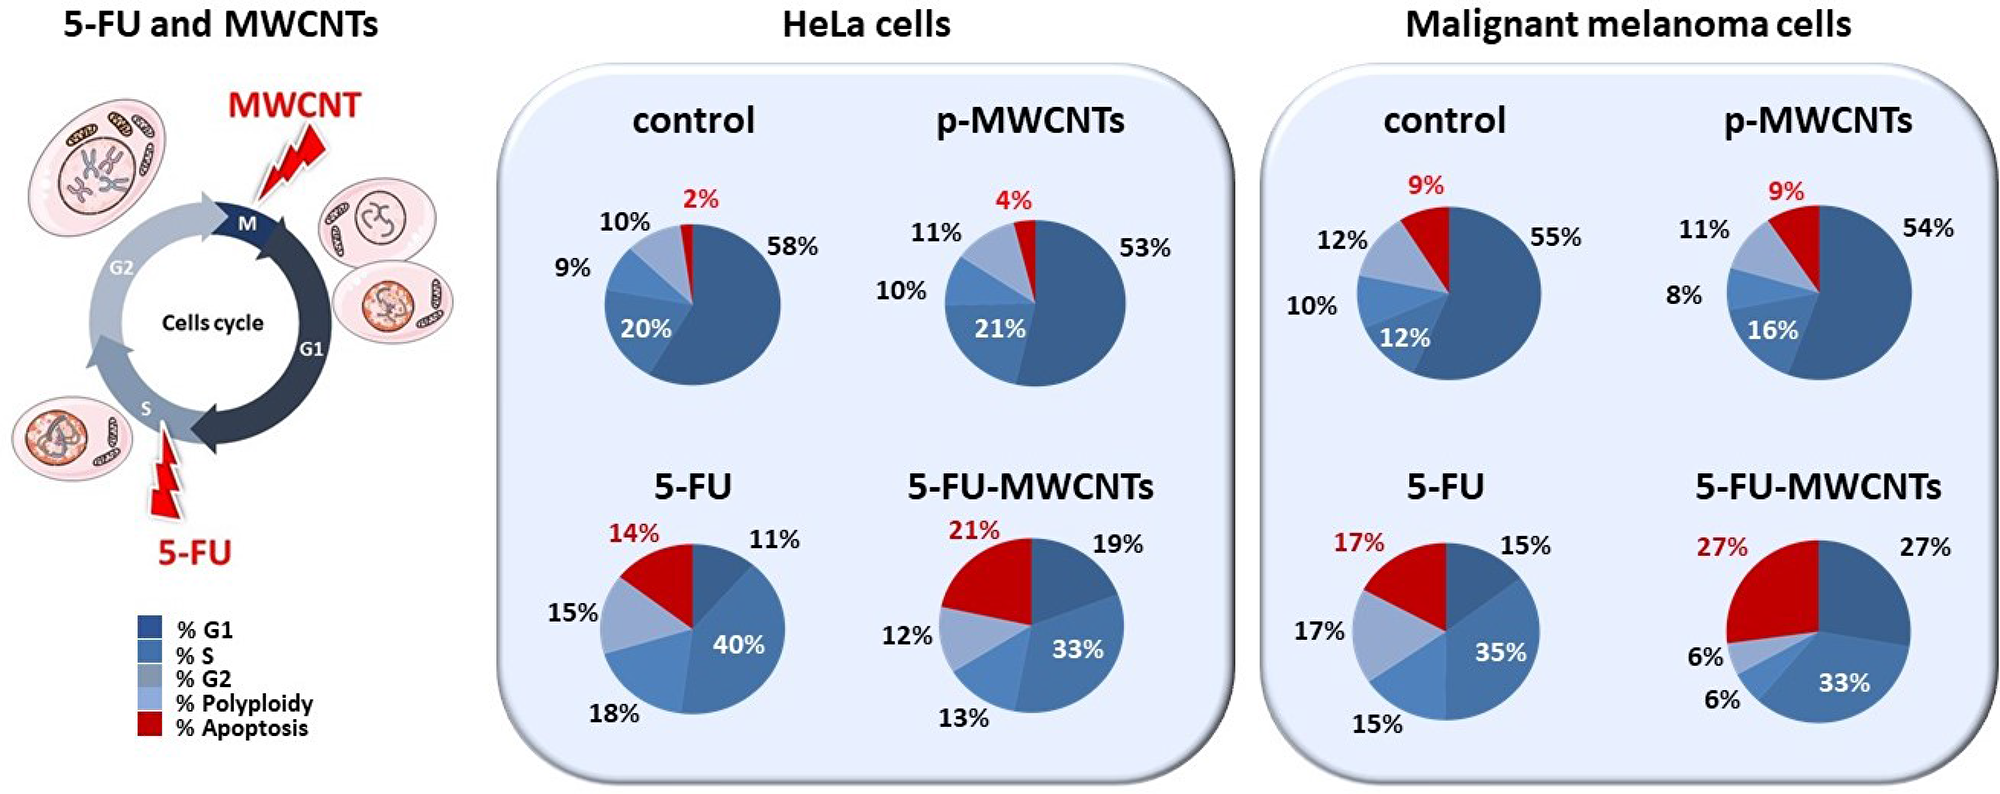 Quantification of the cytotoxic effect of 5-FU-MWCNTs compared to controls.